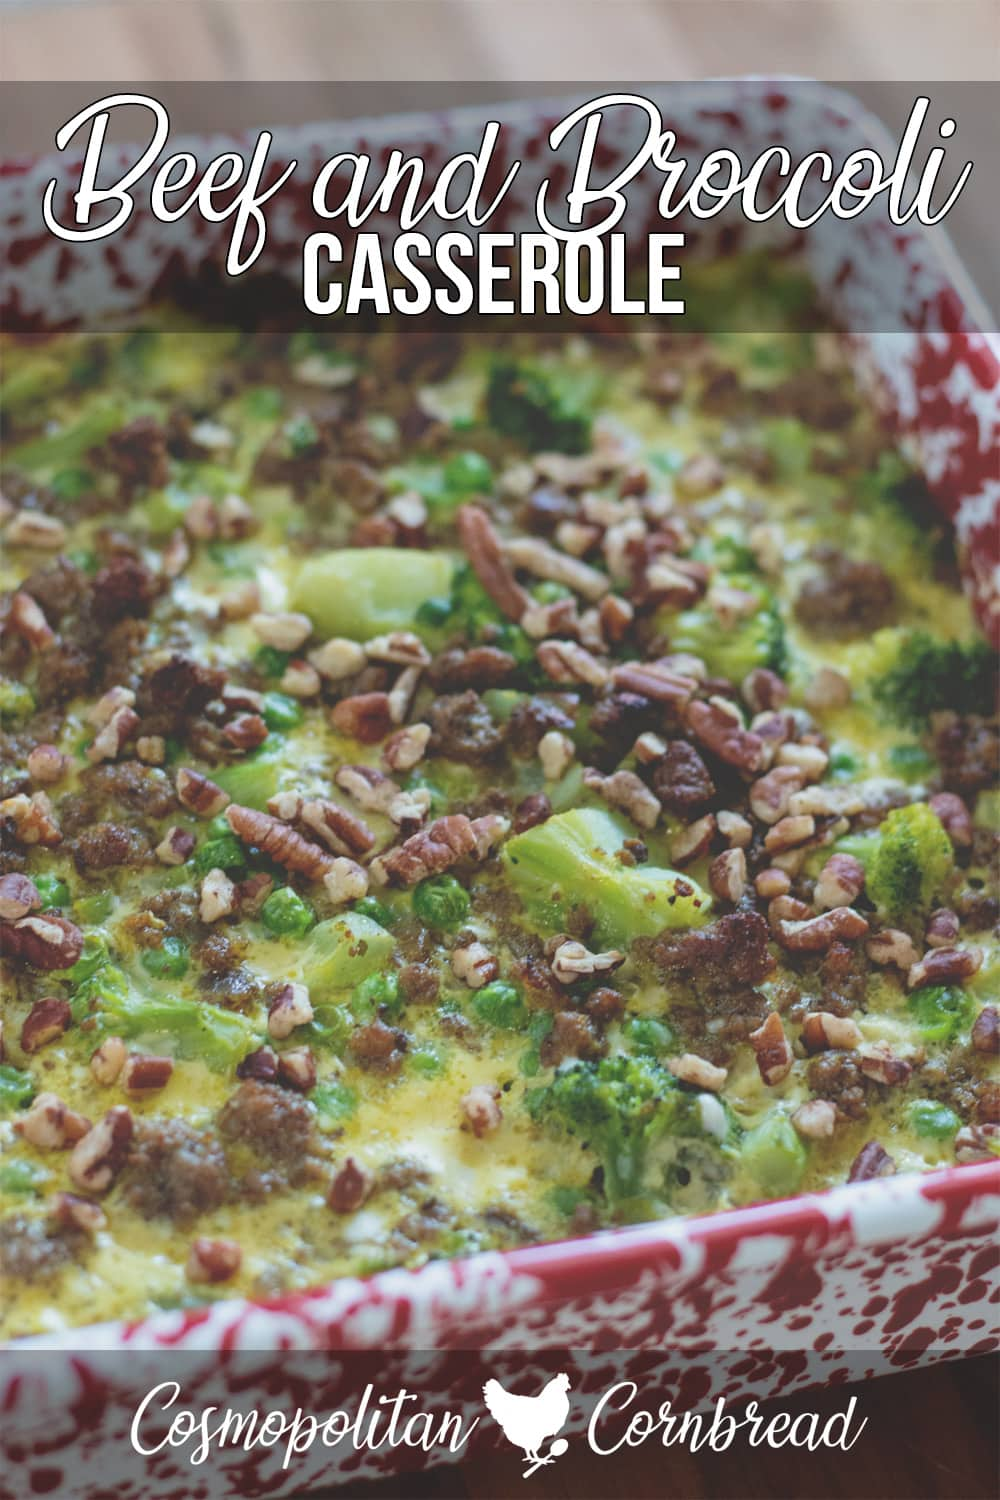 Beef and Broccoli Casserole - Rich, creamy curry and coconut milk give this casserole a lovely, comforting flavor.